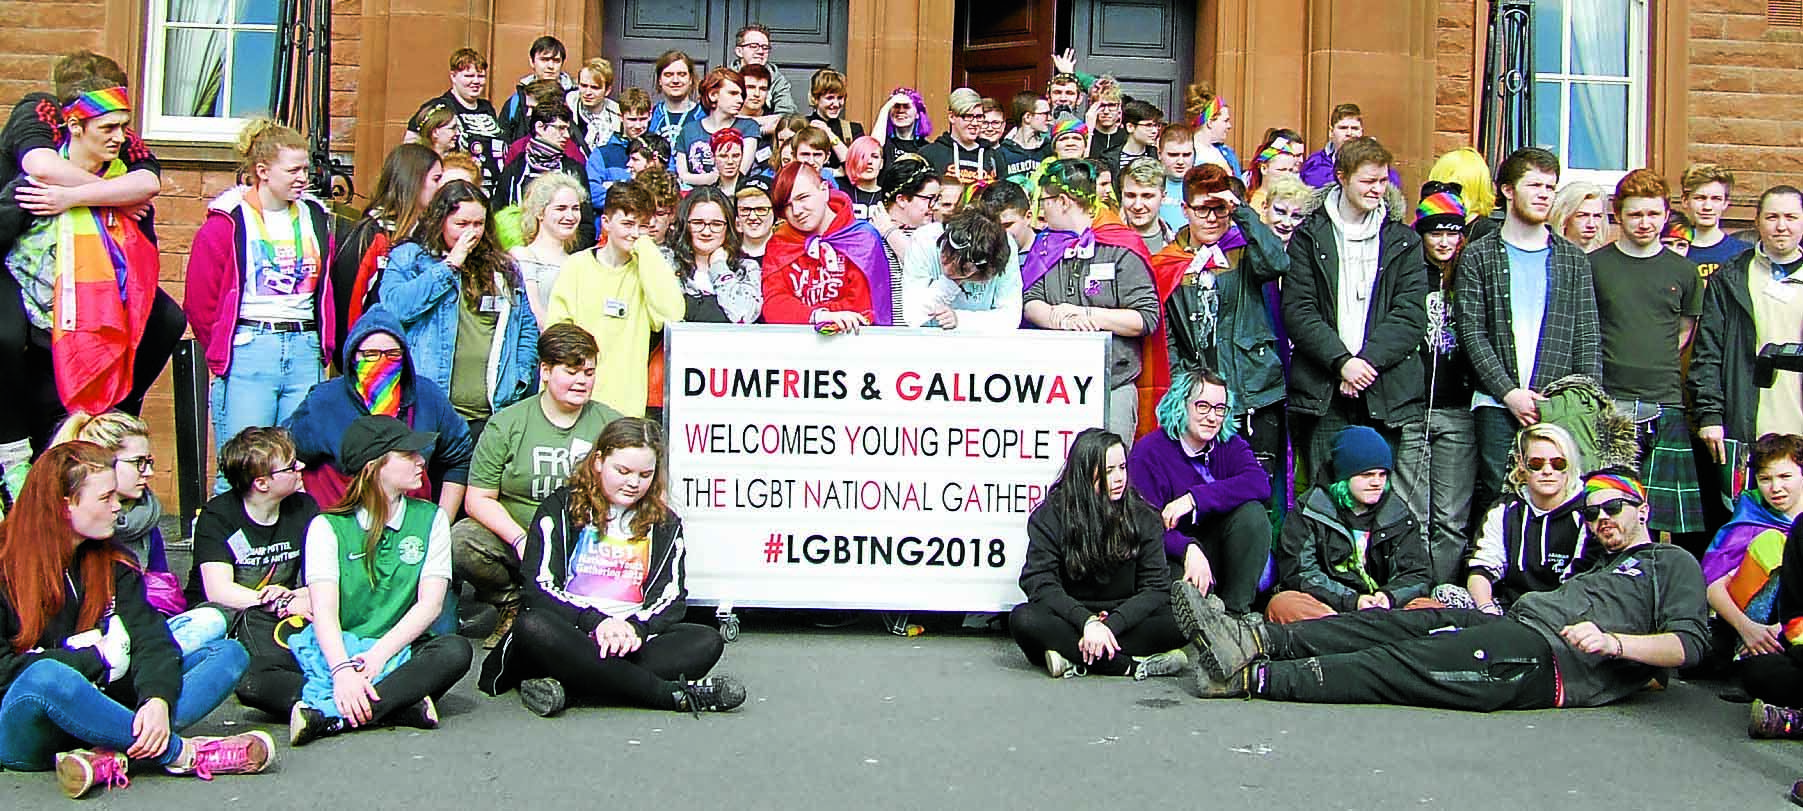 Dumfries flies the flag for LGBT issues